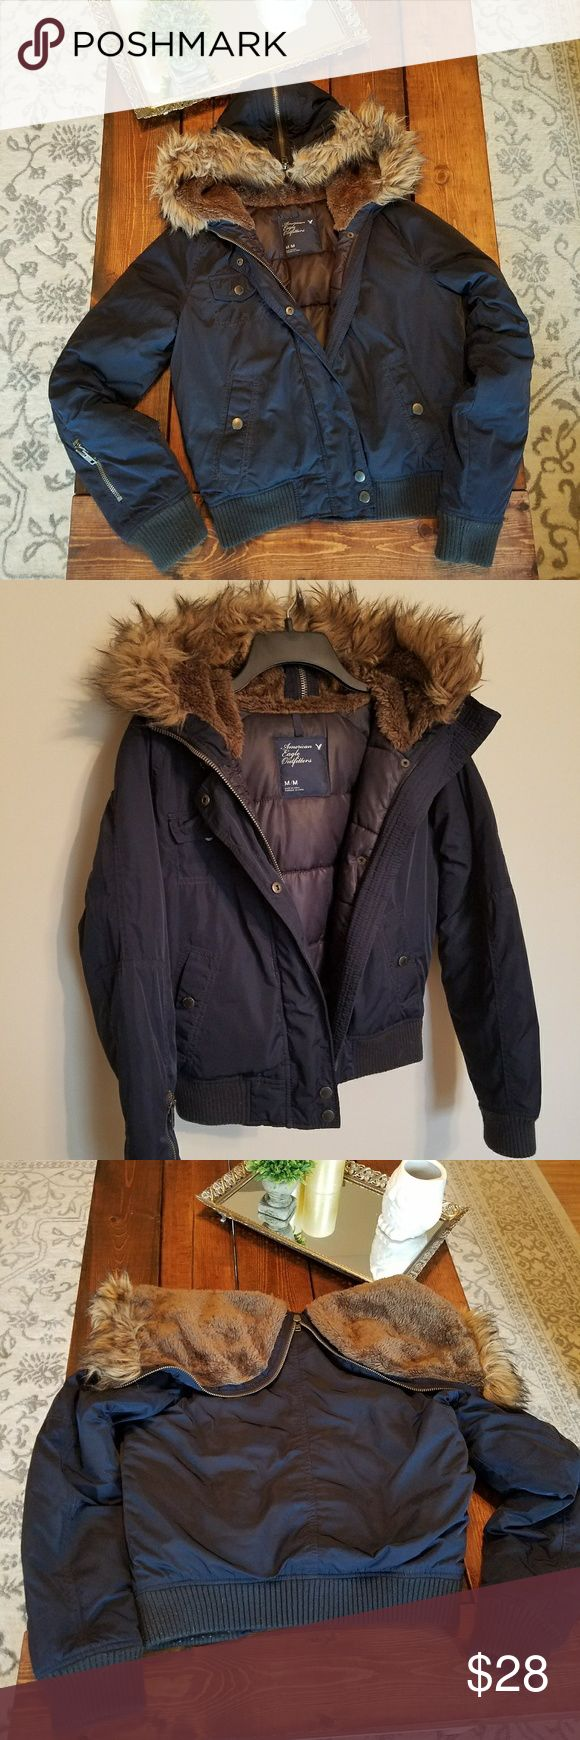 American Eagle navy fur puffer jacket Size medium fits like a small. No flaws. Zips and buttons. The hood zips to lay flat if you don't want the hood. I love this jacket ❤ American Eagle Outfitters Jackets & Coats Puffers